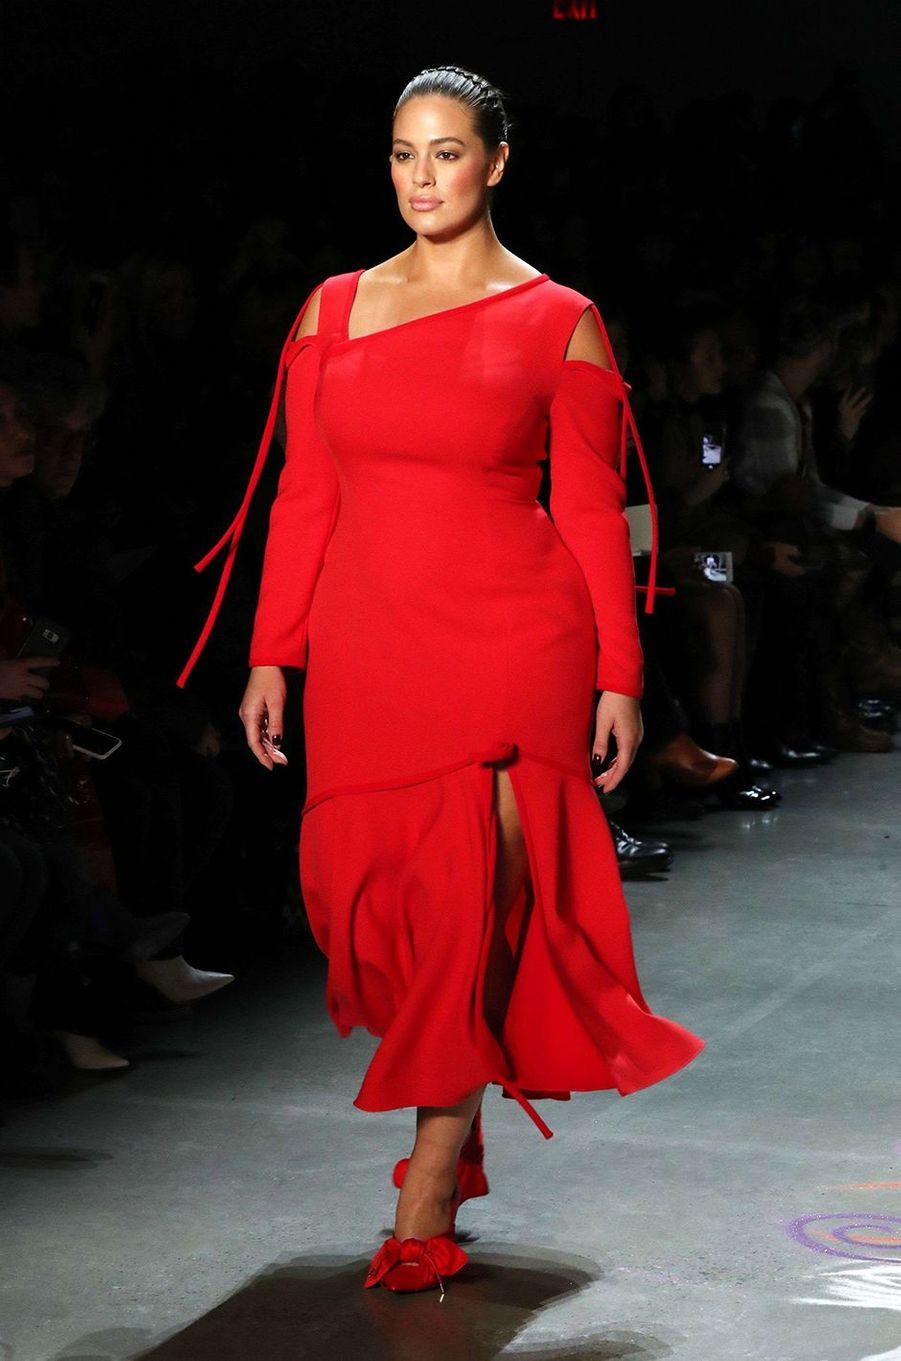 Ashley Graham au défilé de Prabal Gurung à New York, le 11 février 2018.